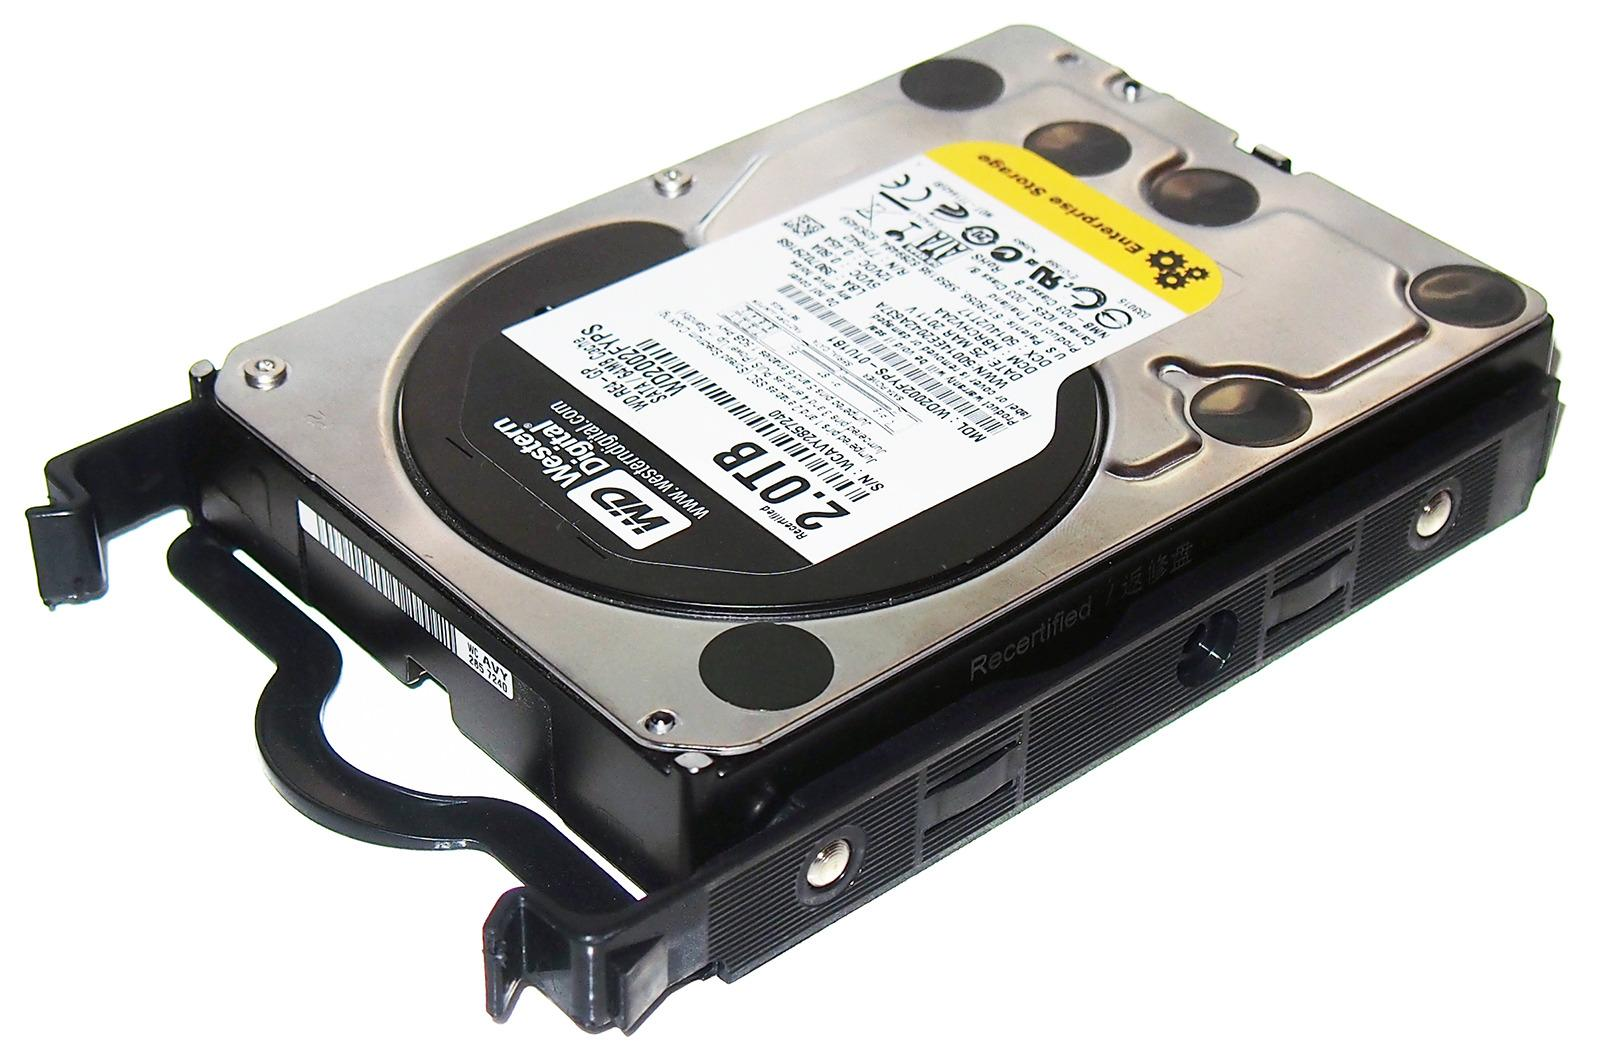 Which Hard Drive is Best for Your Needs?